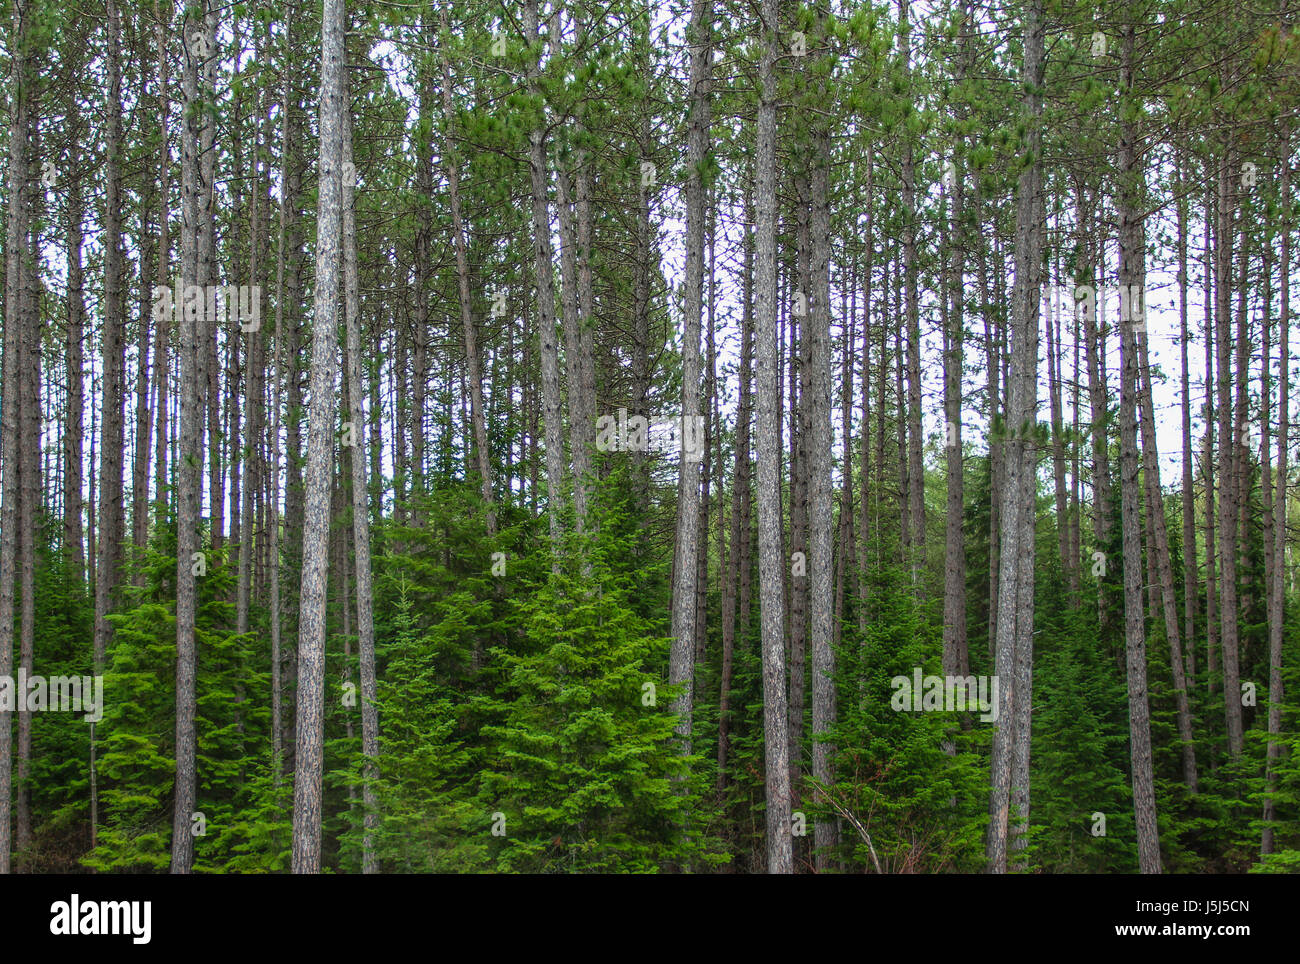 Pines and spruces spring background, Algonquin Provincial Park, Ontario, Canada Stock Photo